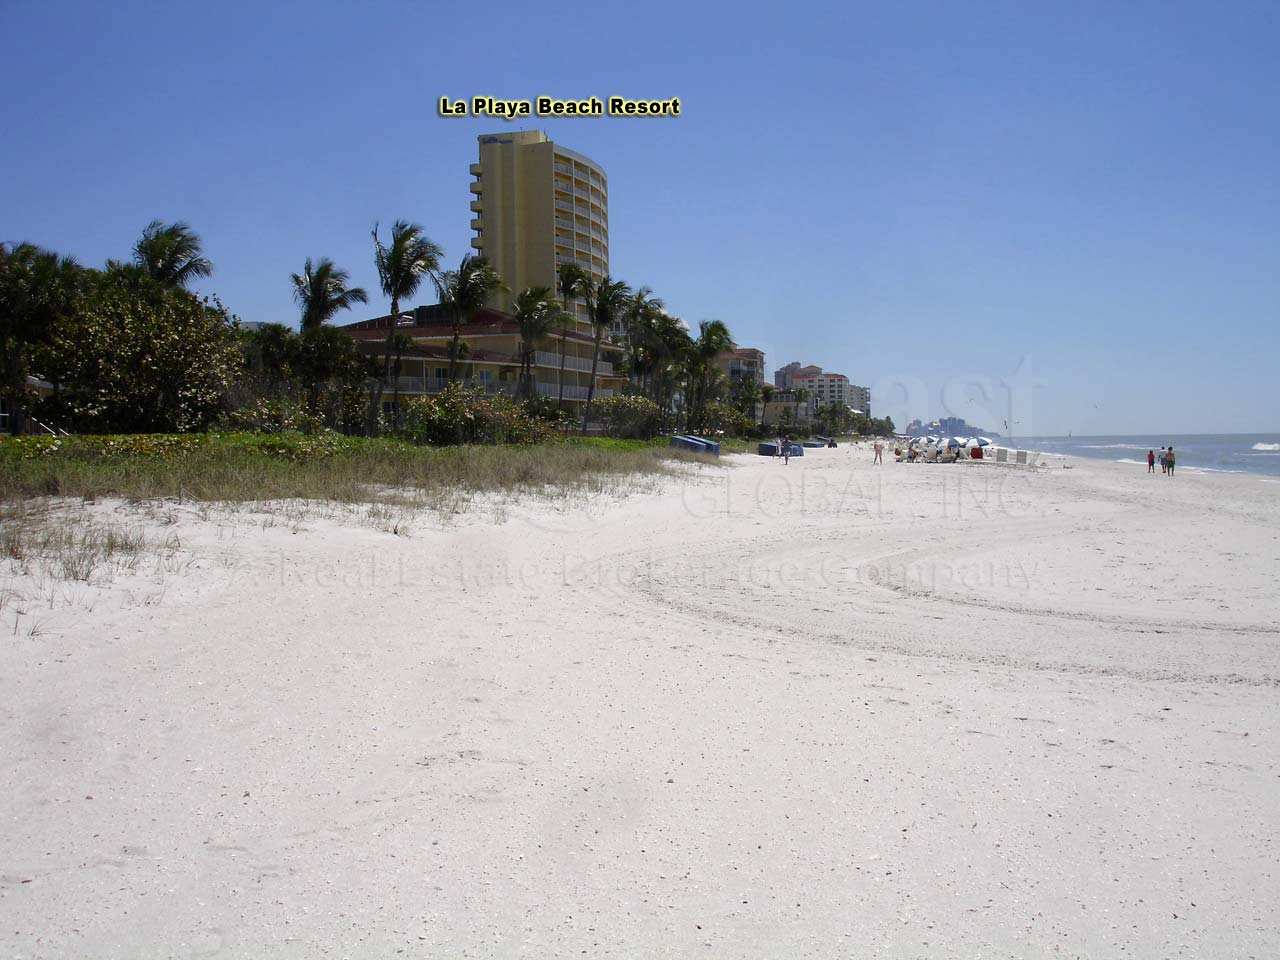 vanderbilt beach Vanderbilt beach is an unincorporated community in collier county, florida, united statesit is located north of the pelican bay census-designated place and west of naples park, along the gulf of mexico.